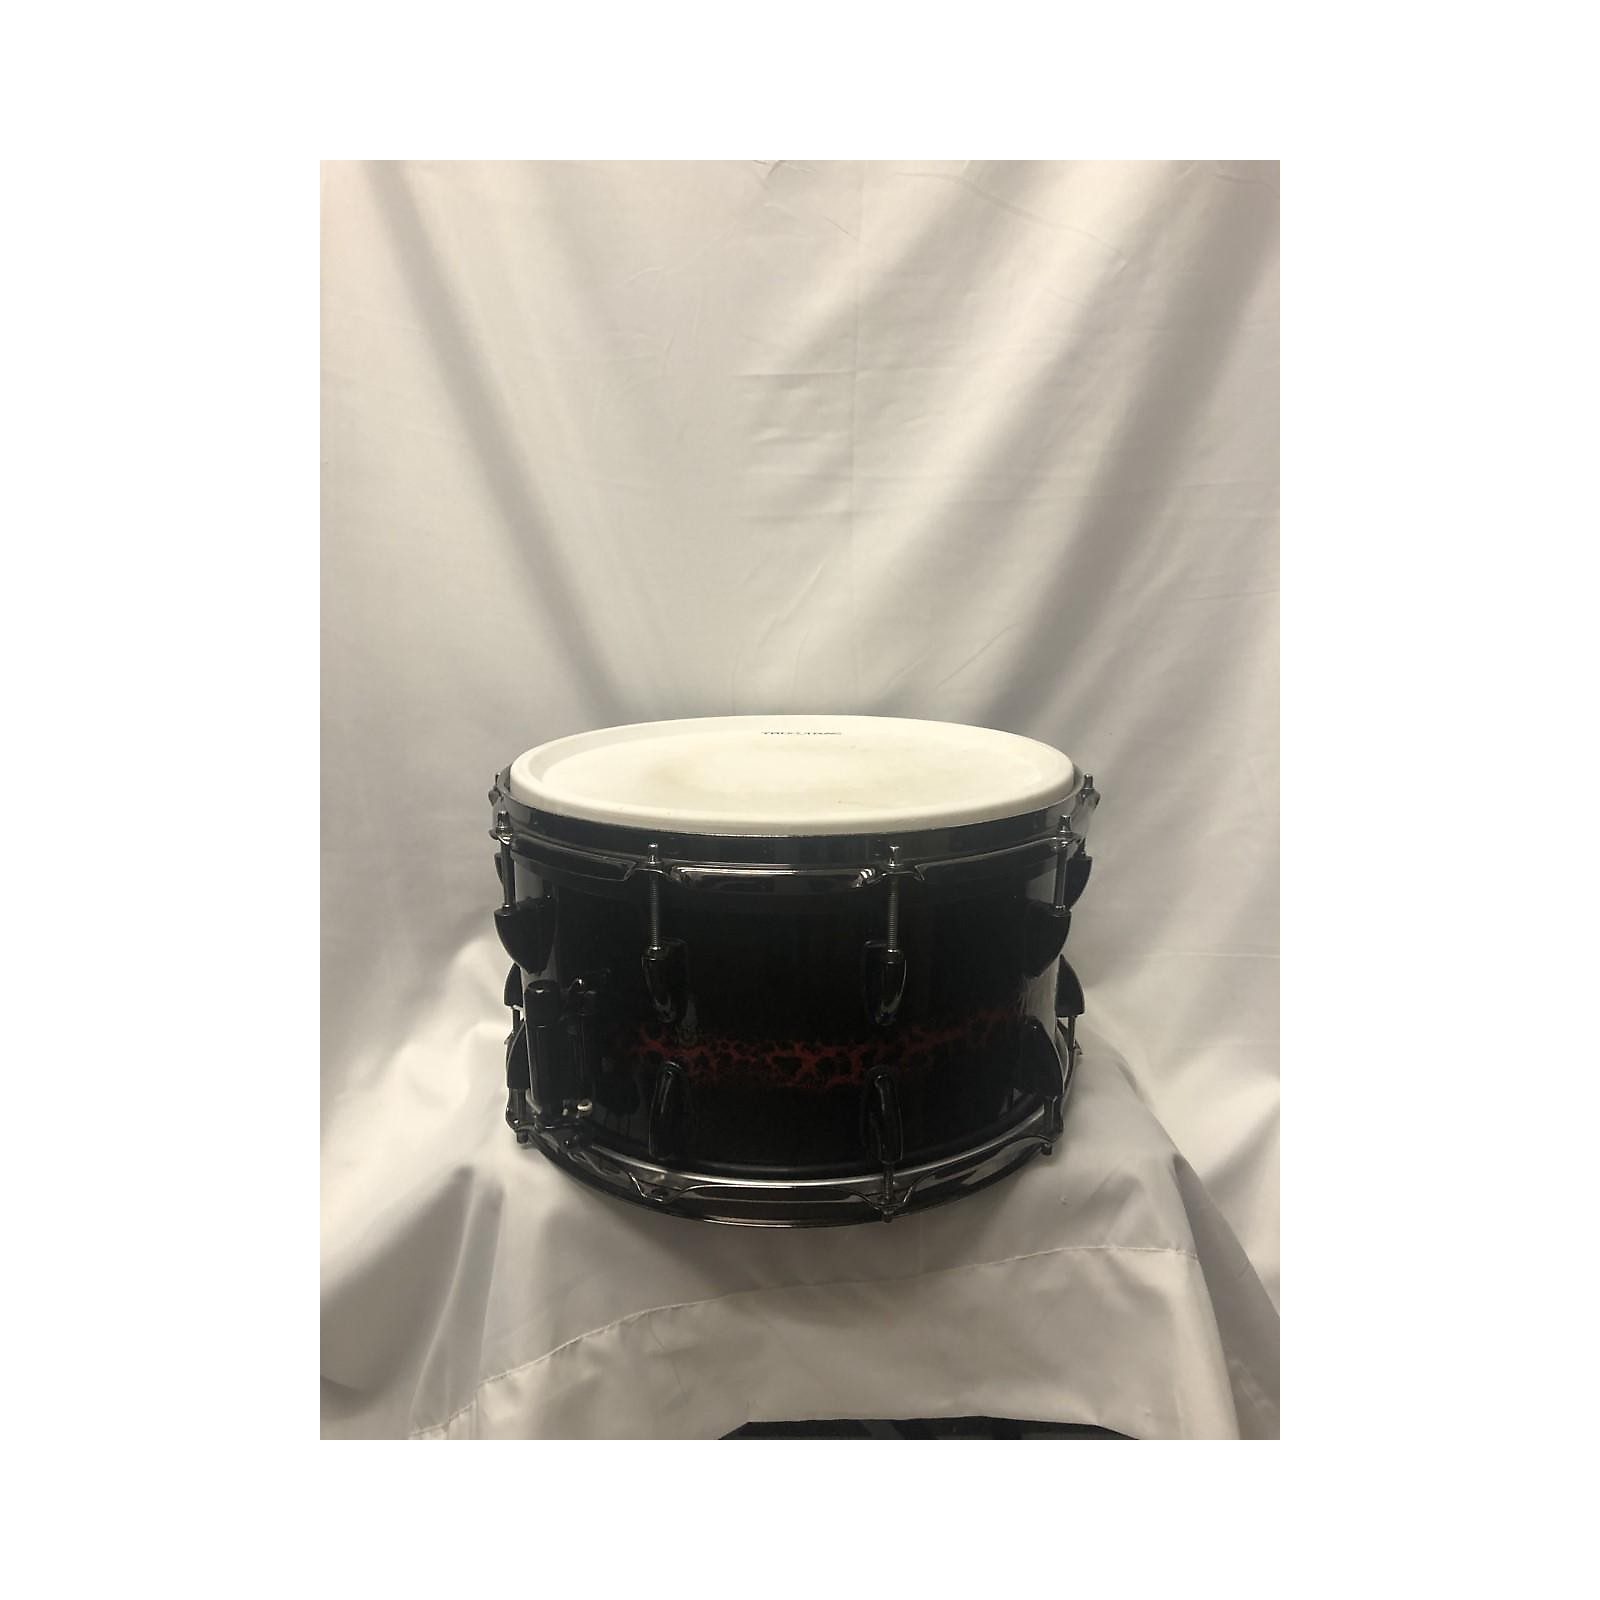 In Store Used Used 2010s MBW CUSTOM DRUM 14X8 SNARE 22 W/ PEARL TRUTRACK ELECTRIC DRUM TRIGGER Drum CRACKLE BLACK & RED